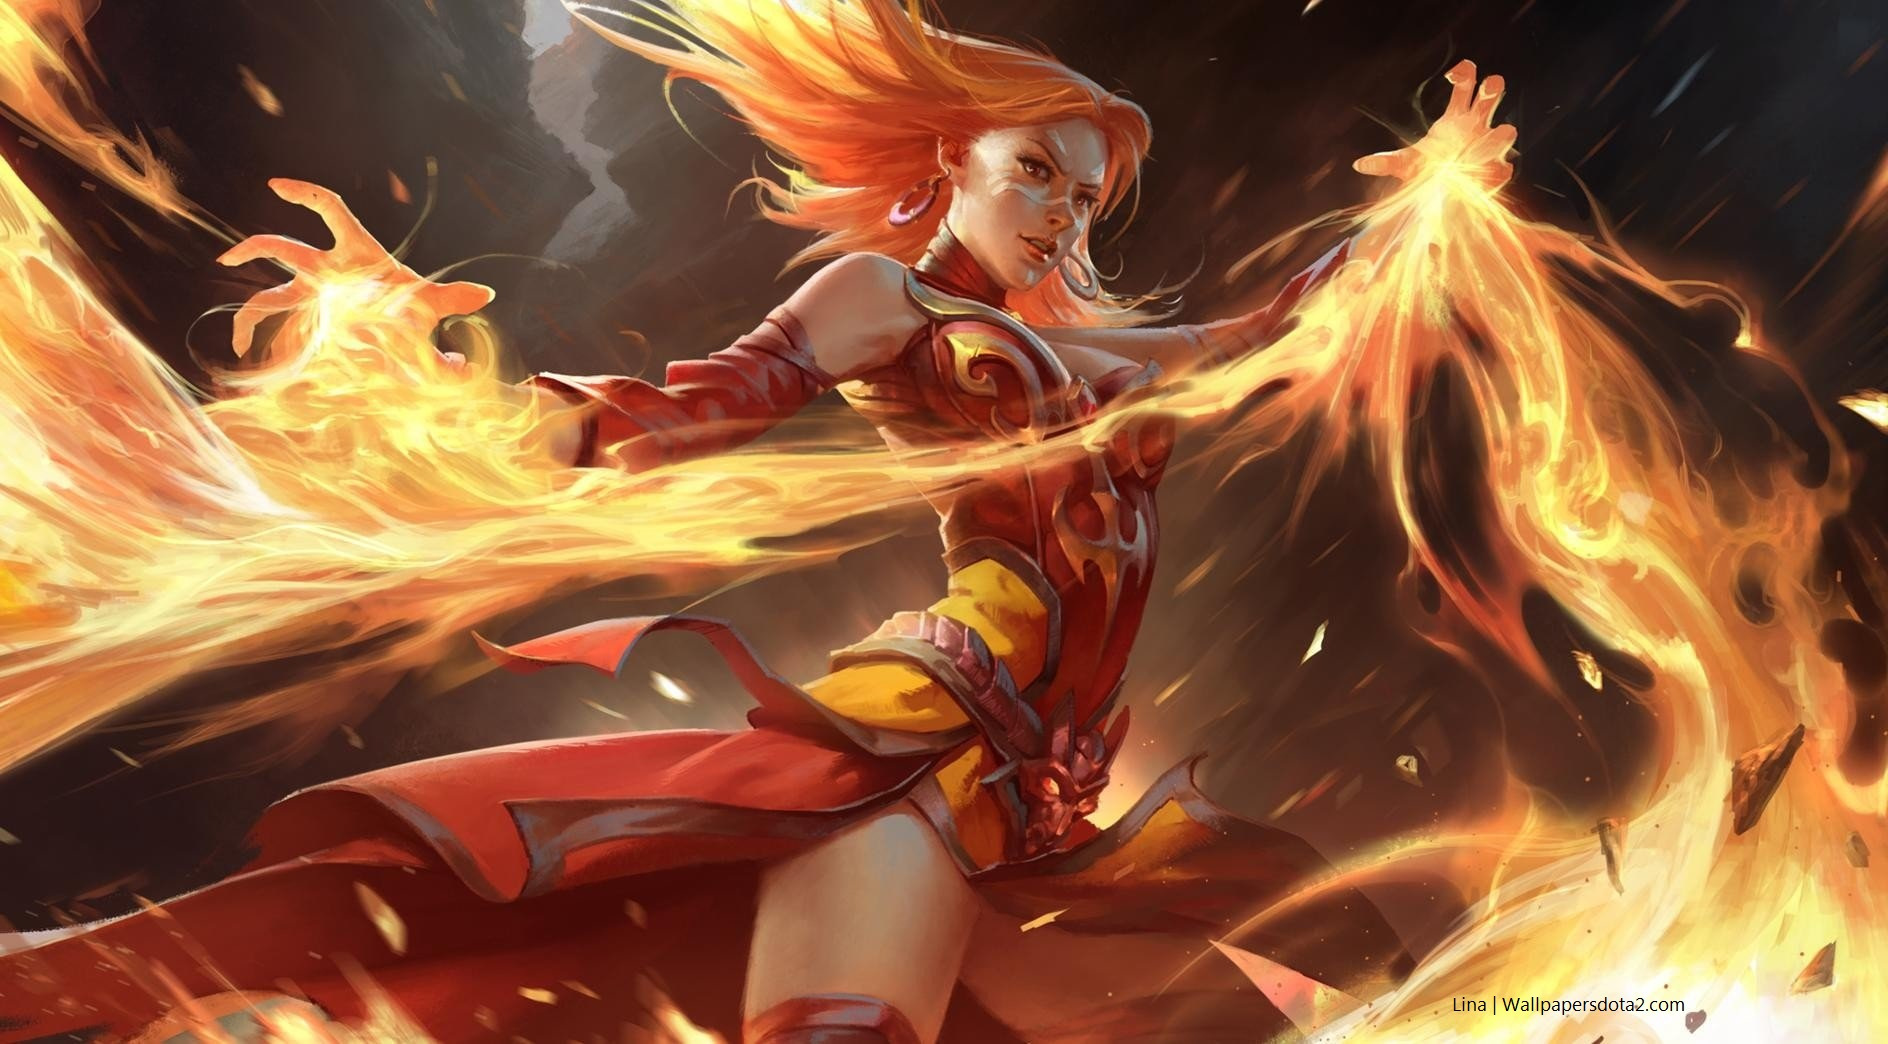 Lina free wallpapers for Desktop Dota 2 HD